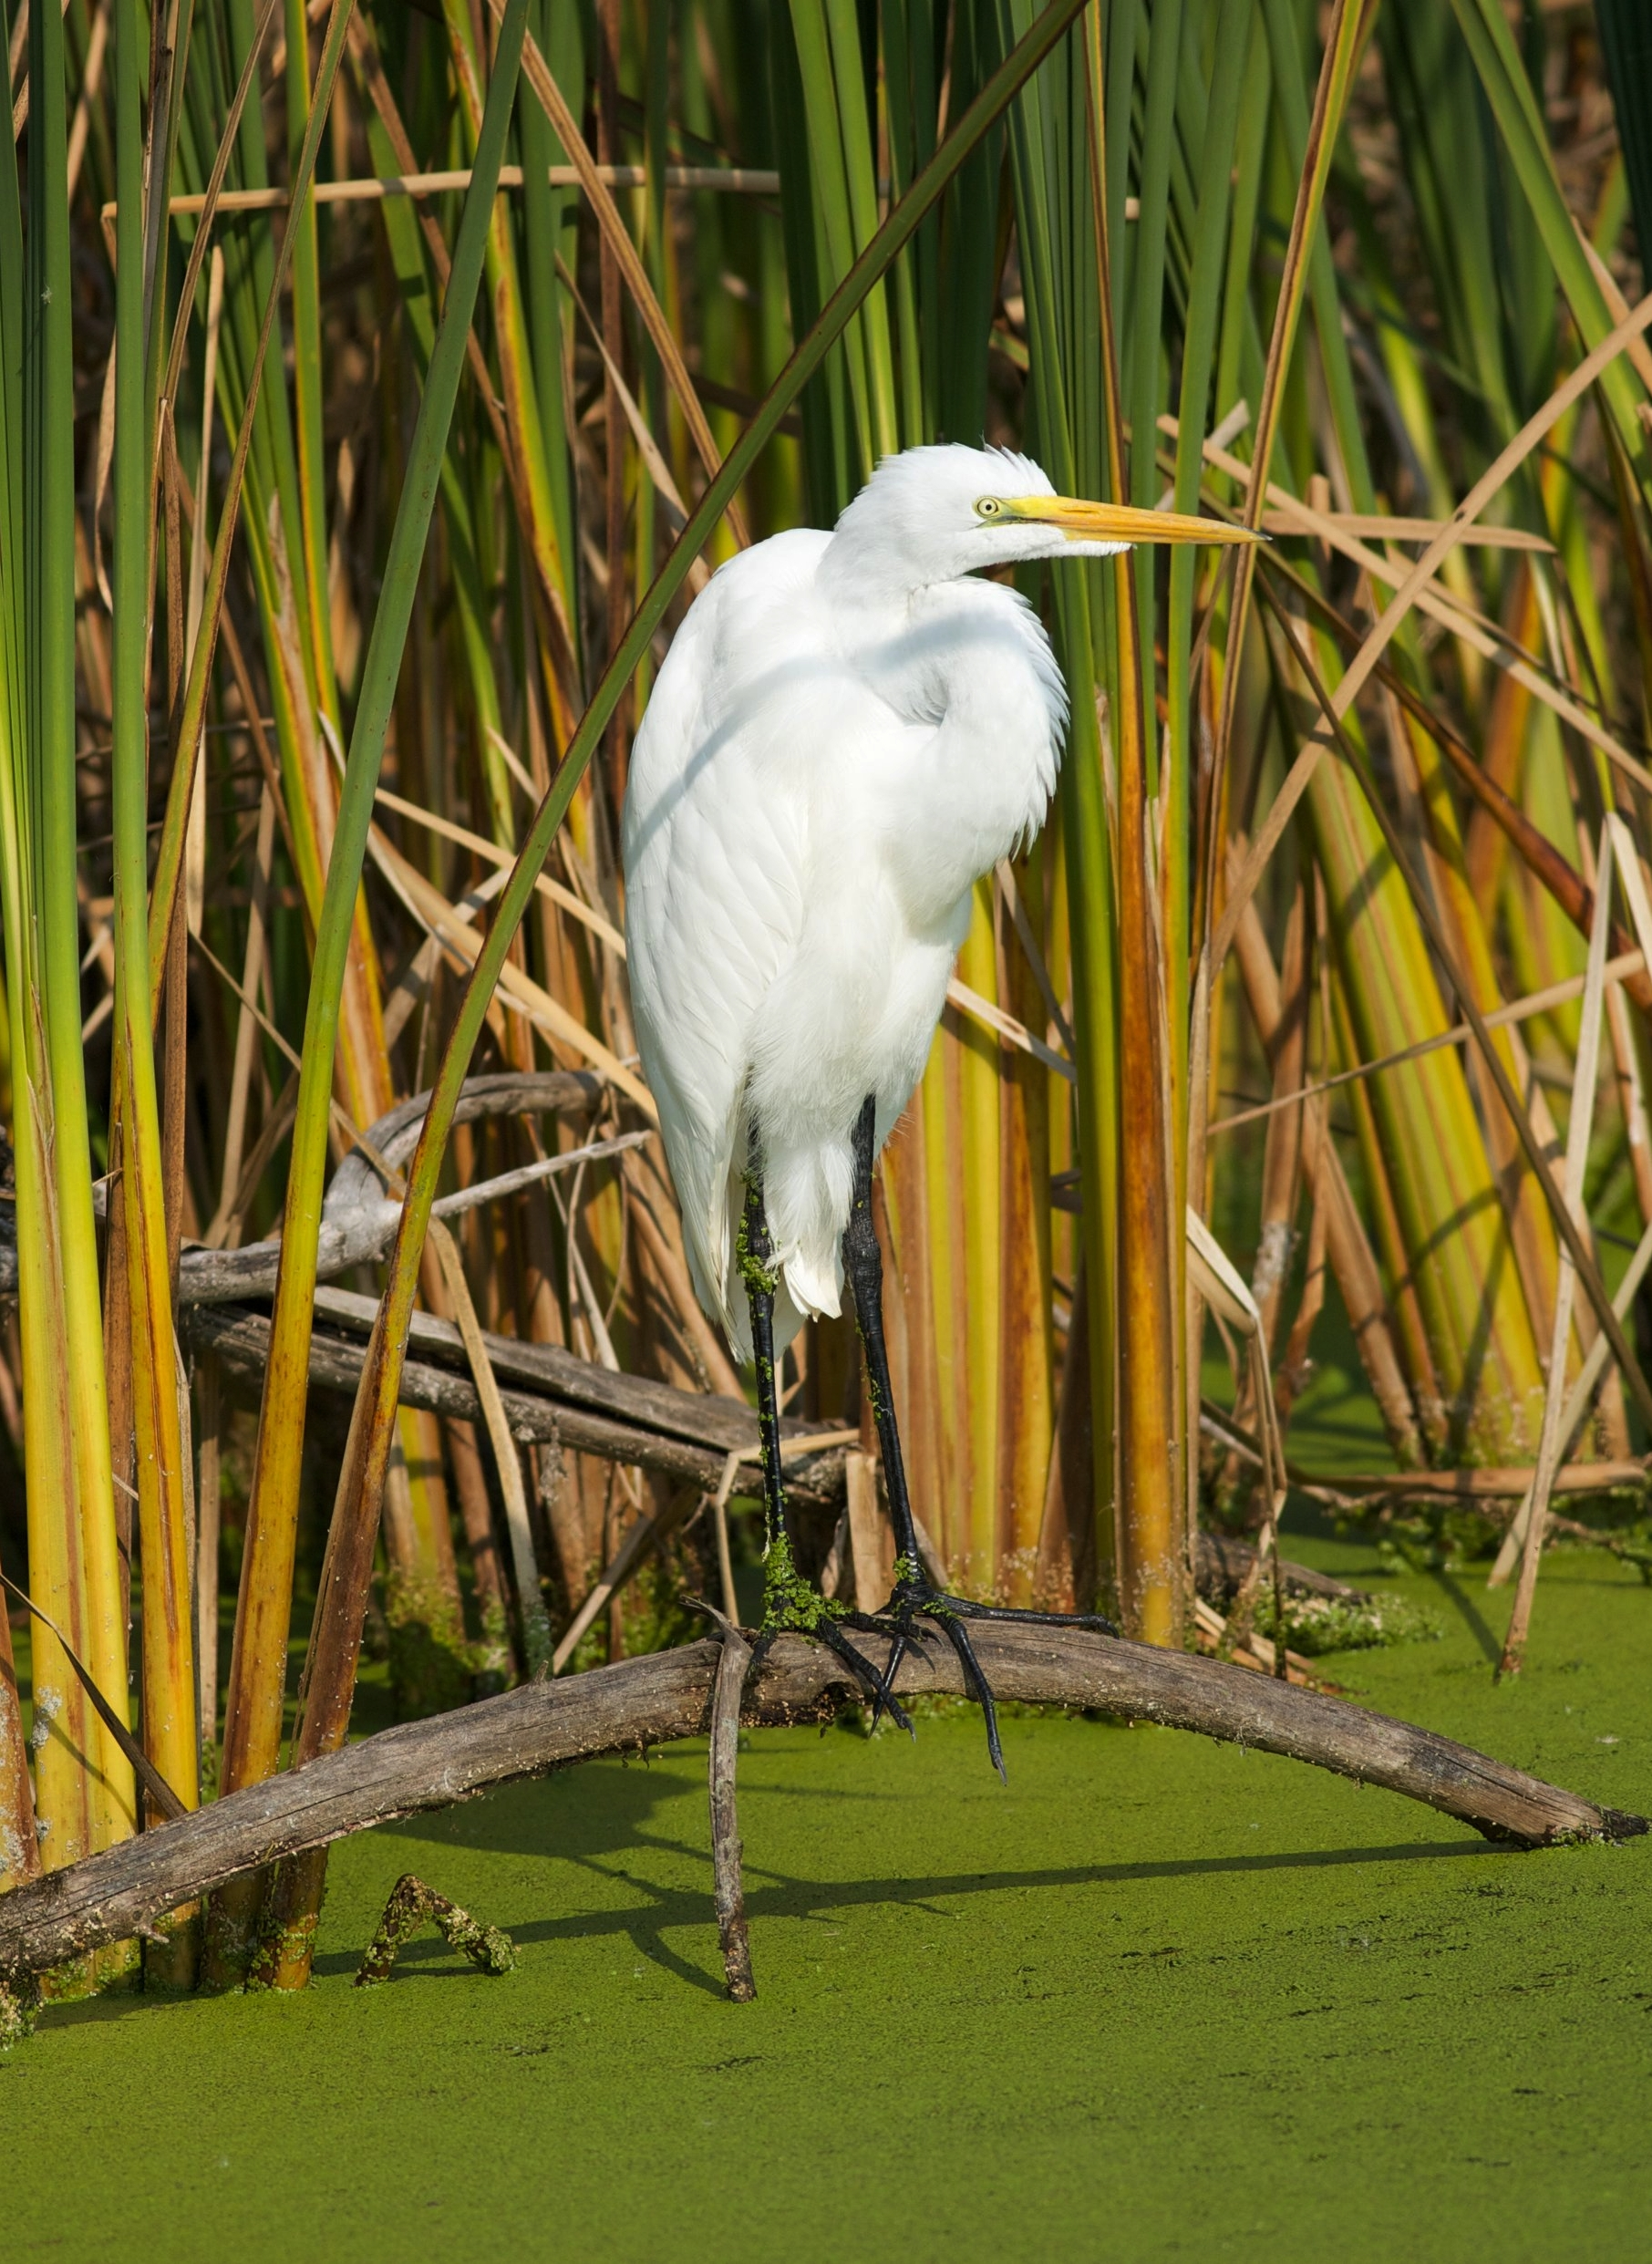 A great egret soaks up the sights of a protected wetland. Photo by Arlene Koziol